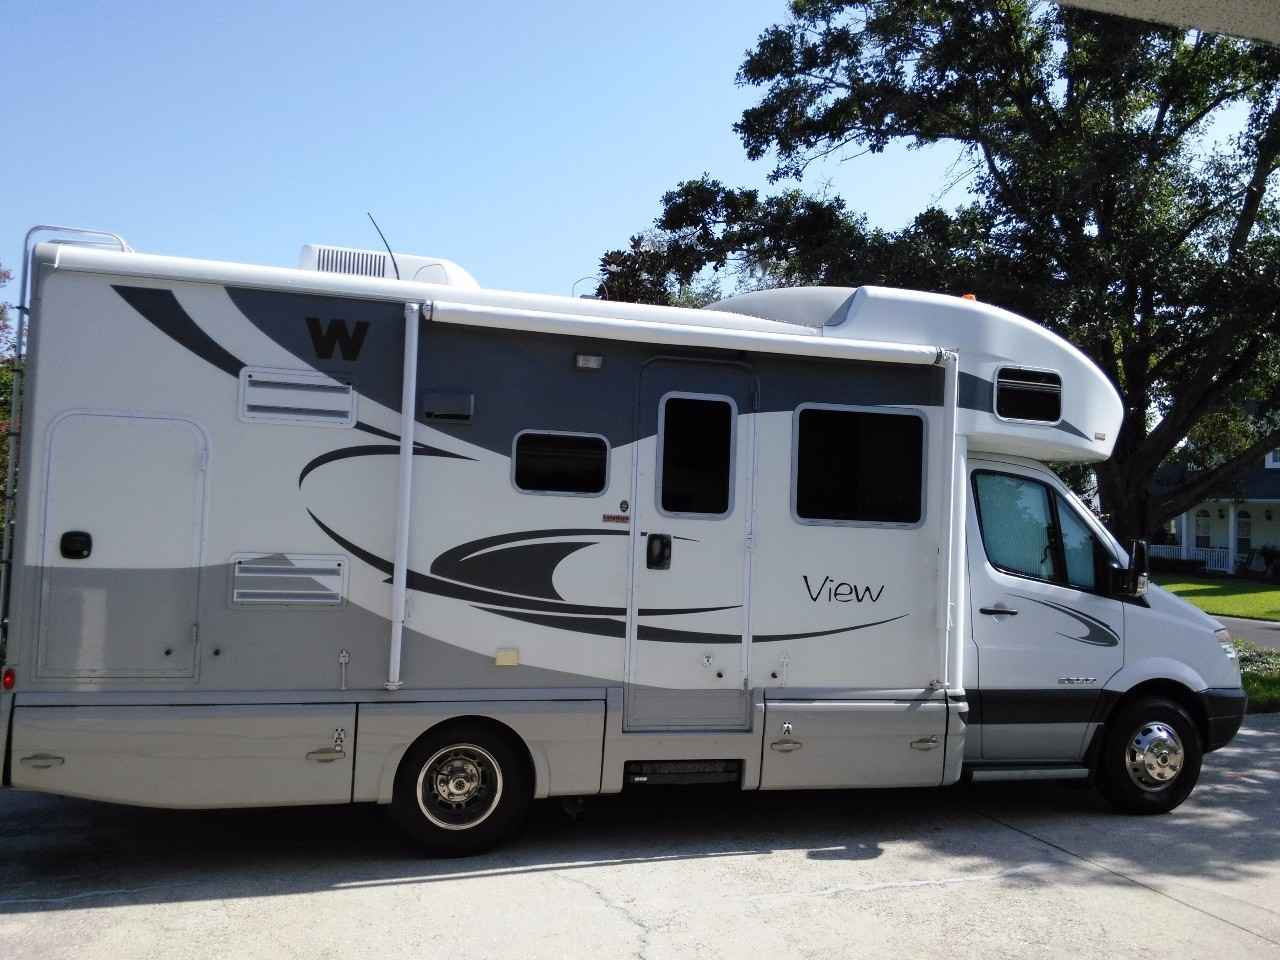 Cool  Winnebago Fuse 23T Offers A More Affordable Fuel Efficient Chassis With A Broader Dealer Network For Servicing That Saves Nearly $23,000 Compared To The Winnebago View And Itasca Navion, And Includes Slightly More Torque Or